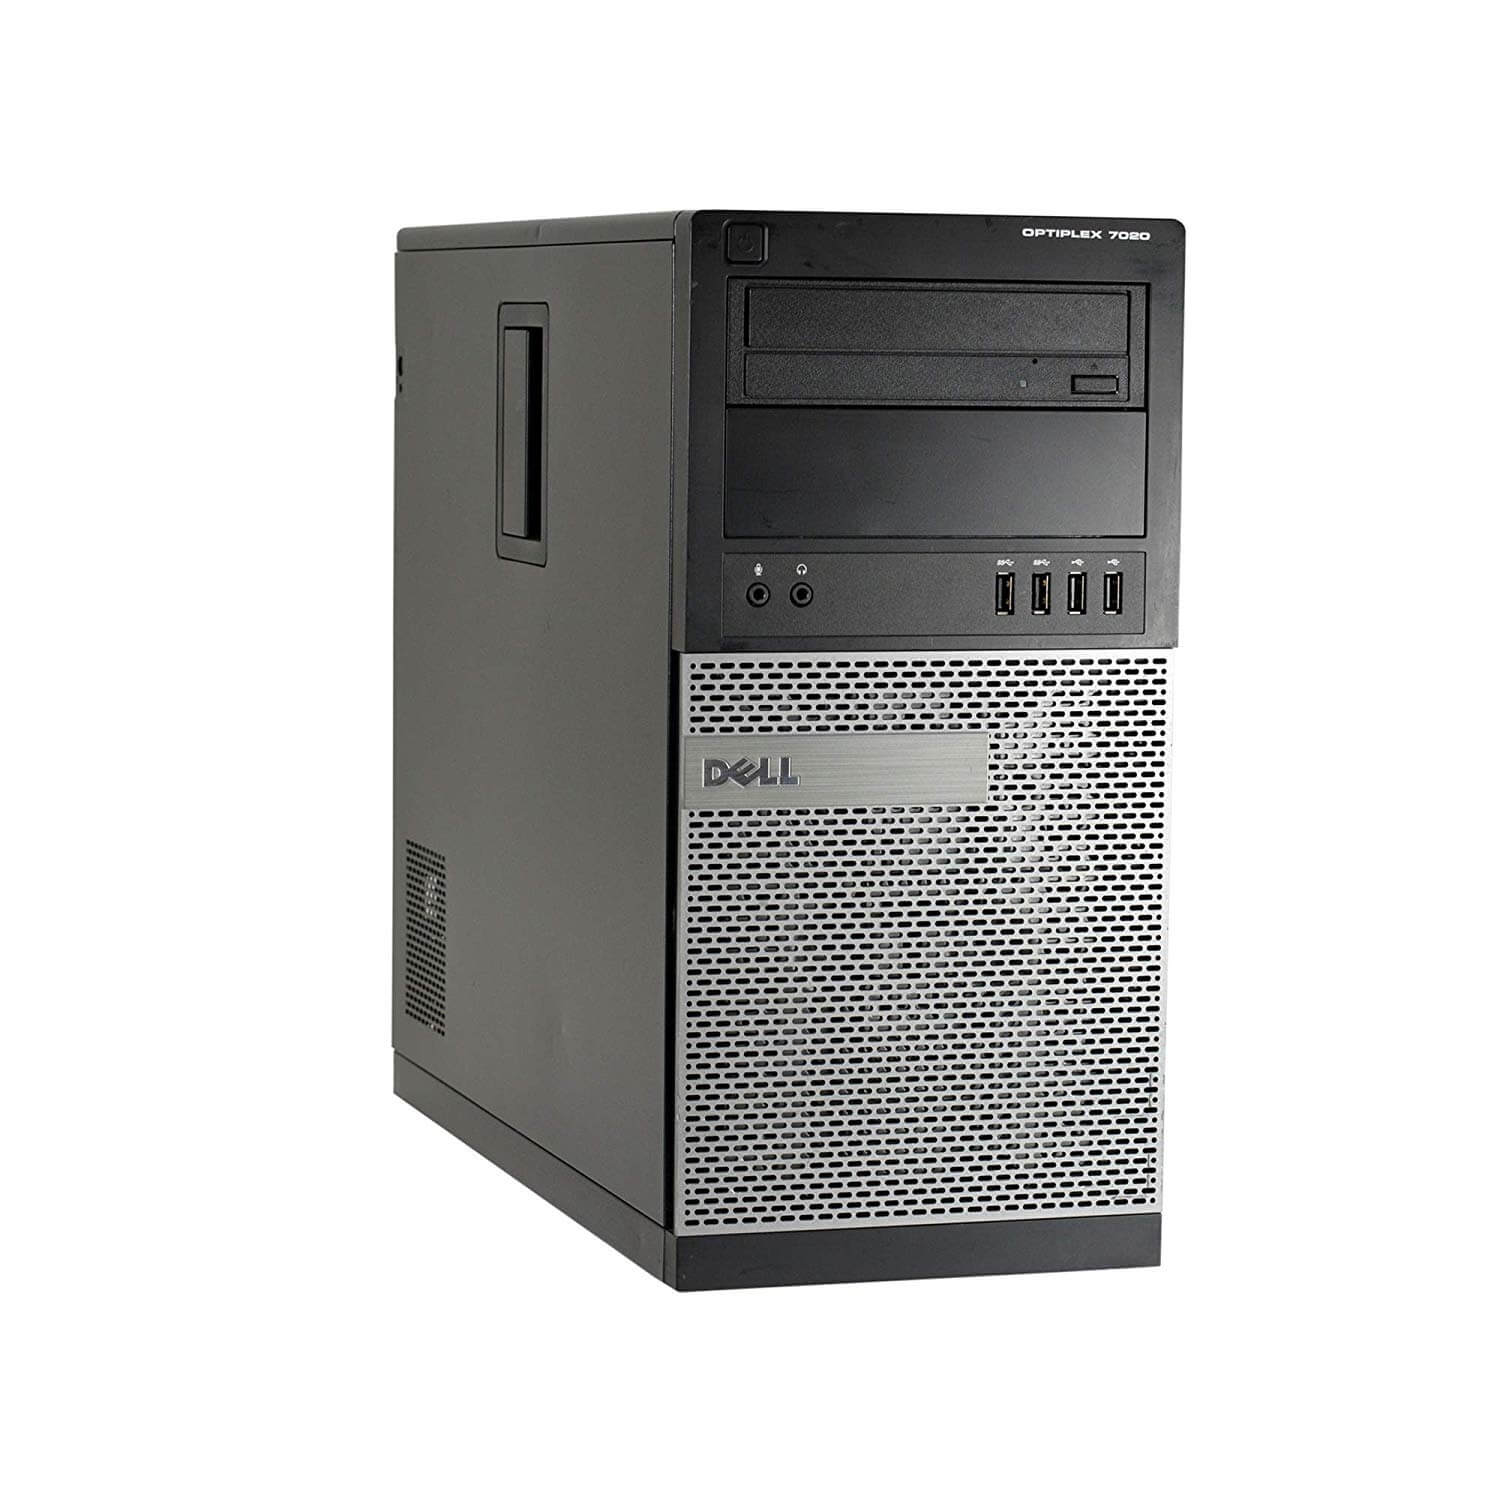 DELL 7020 TOWER I5-4590 3,3 / 8192 MB DDR3 / 120 GB SSD NOWY + 500 GB / DVD / WINDOWS 10 PRO